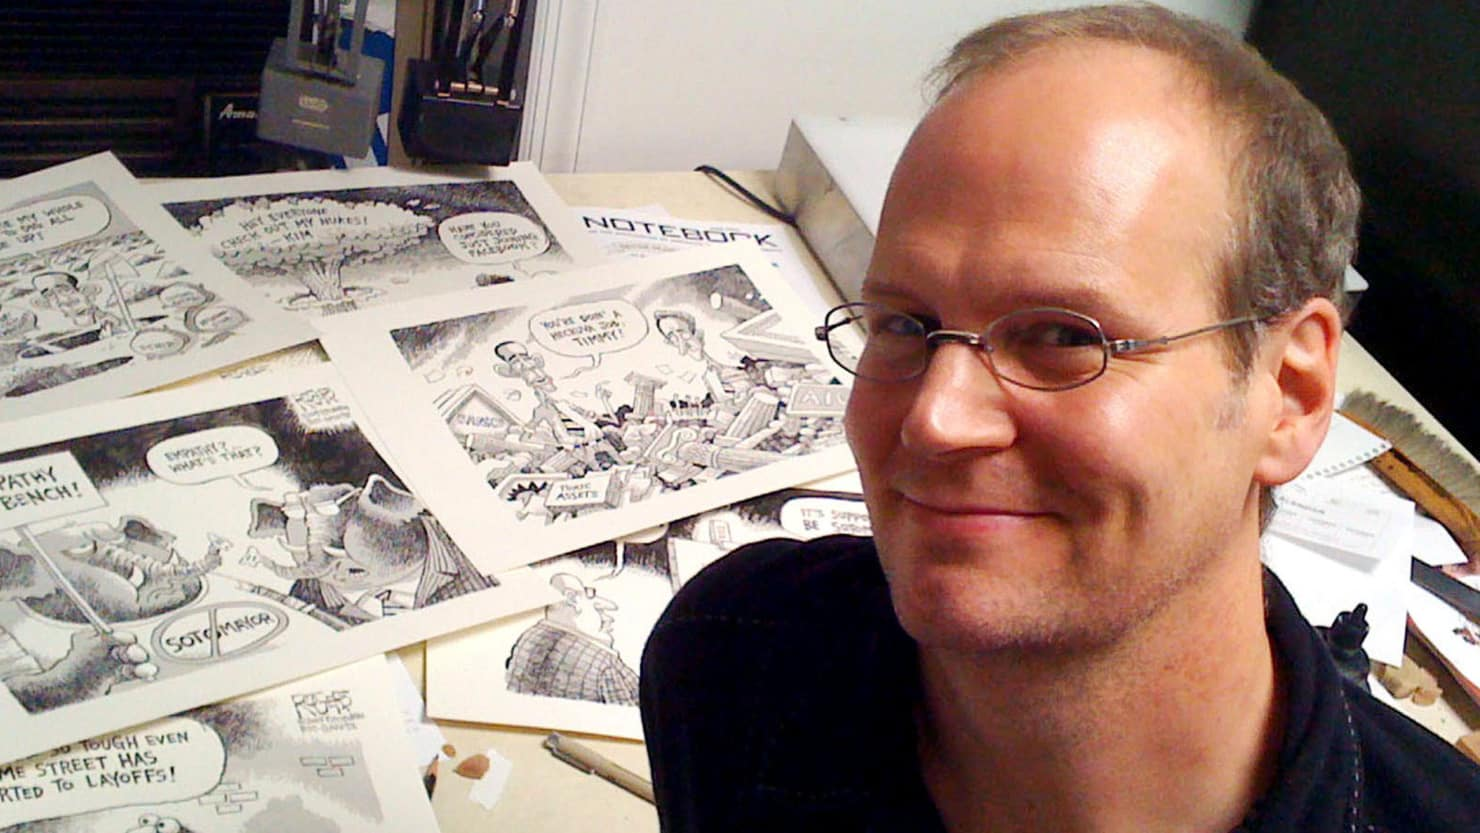 On June fourteenth, Burris fired Rob Rogers, the Post-Gazette's Pulitzer Prize nominated cartoonist.